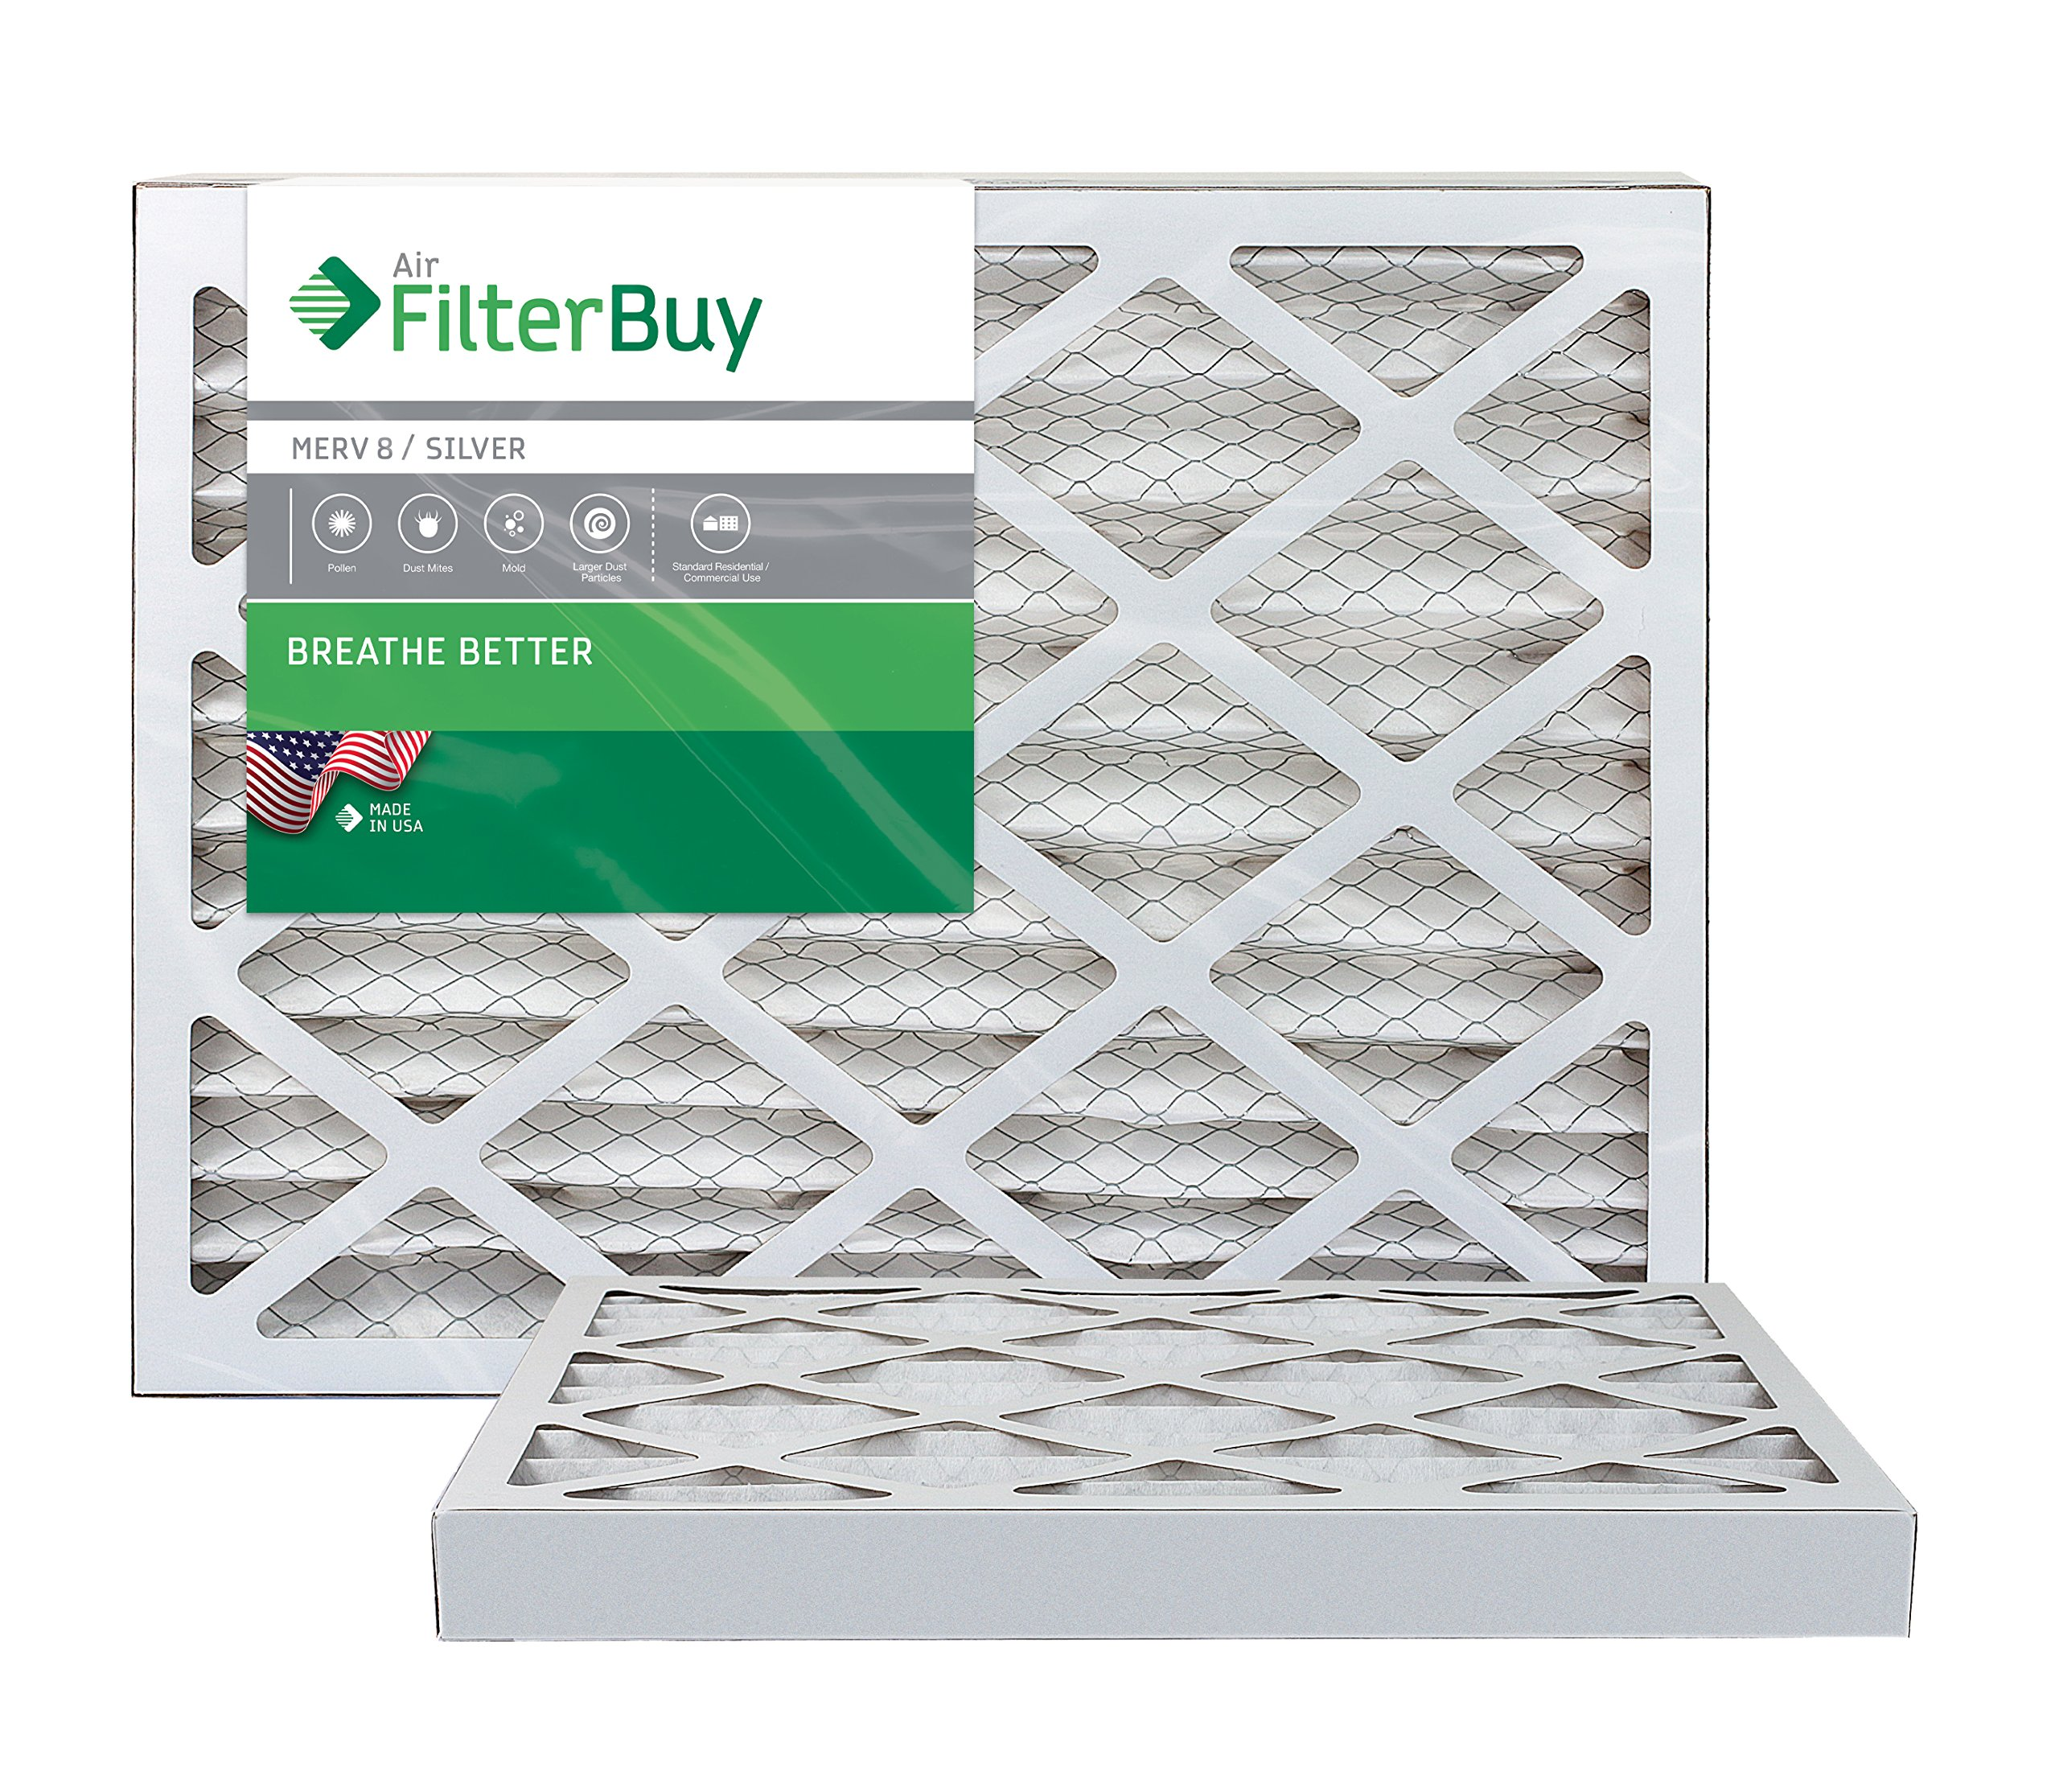 FilterBuy 12x12x2 MERV 8 Pleated AC Furnace Air Filter, (Pack of 2 Filters), 12x12x2 – Silver